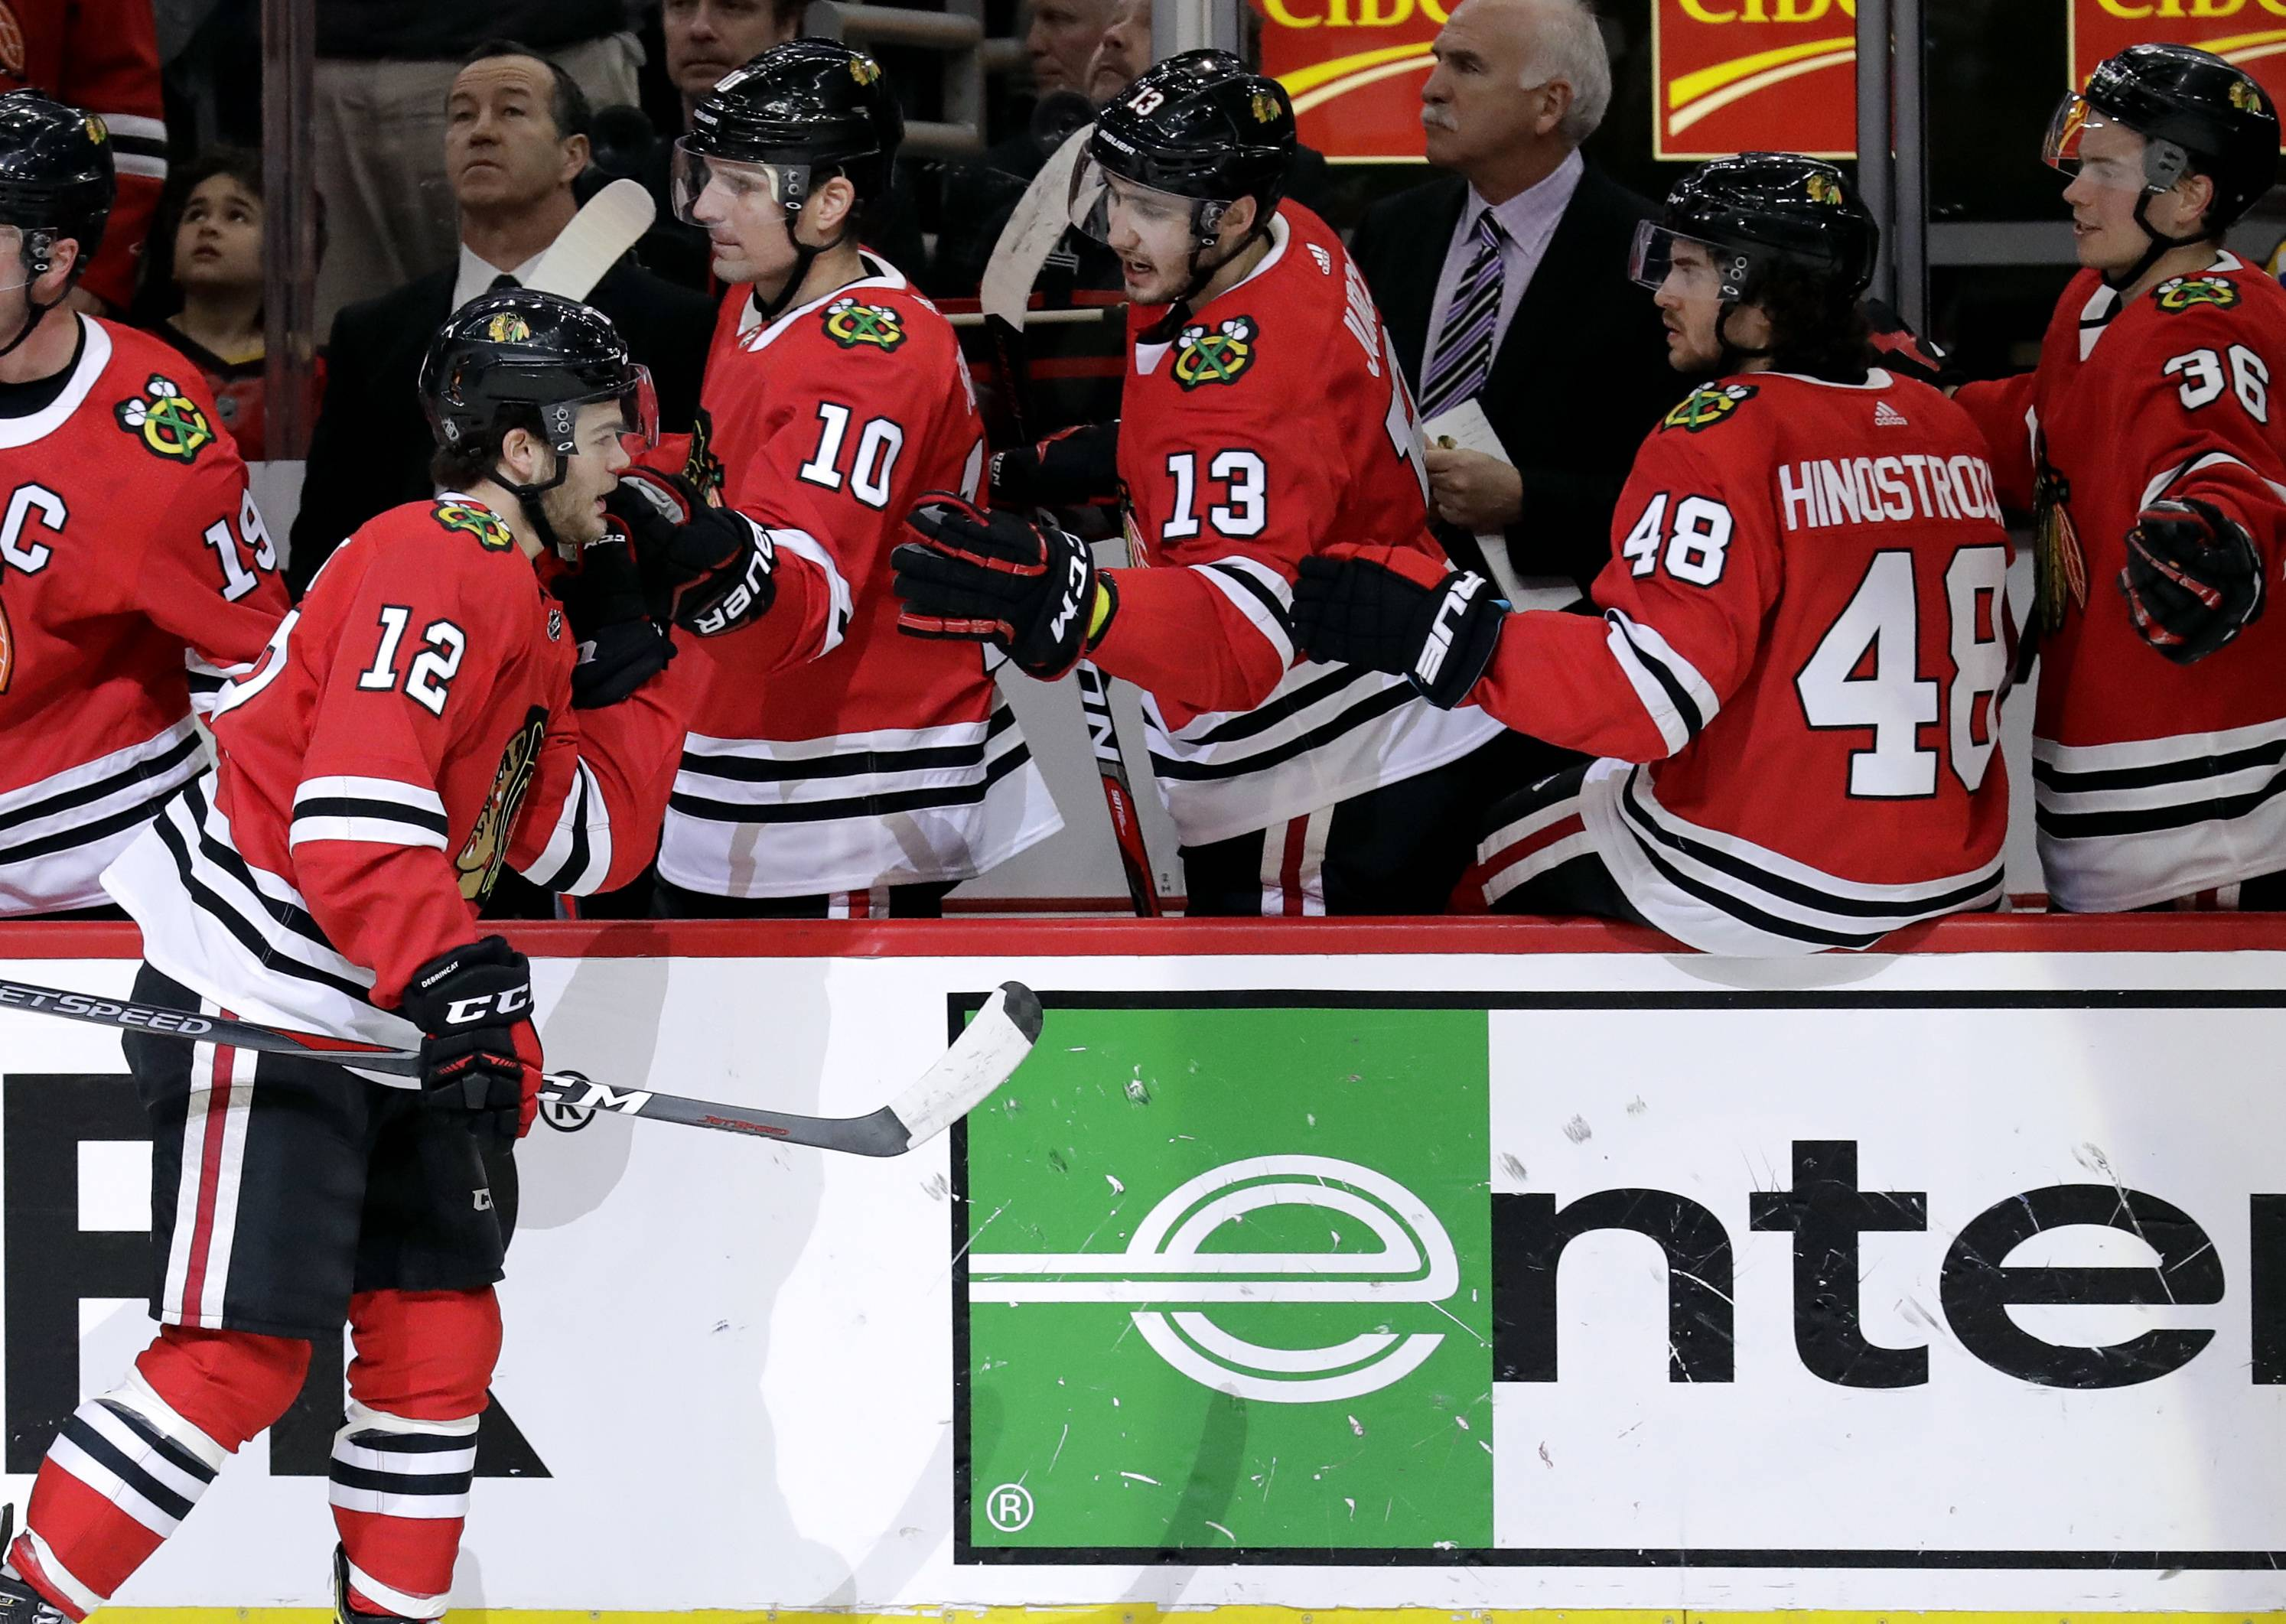 Chicago Blackhawks right wing Alex DeBrincat (12) celebrates with teammates after scoring a goal during the first period of an NHL hockey game against the St. Louis Blues, Sunday, March 18, 2018, in Chicago. (AP Photo/Nam Y. Huh)